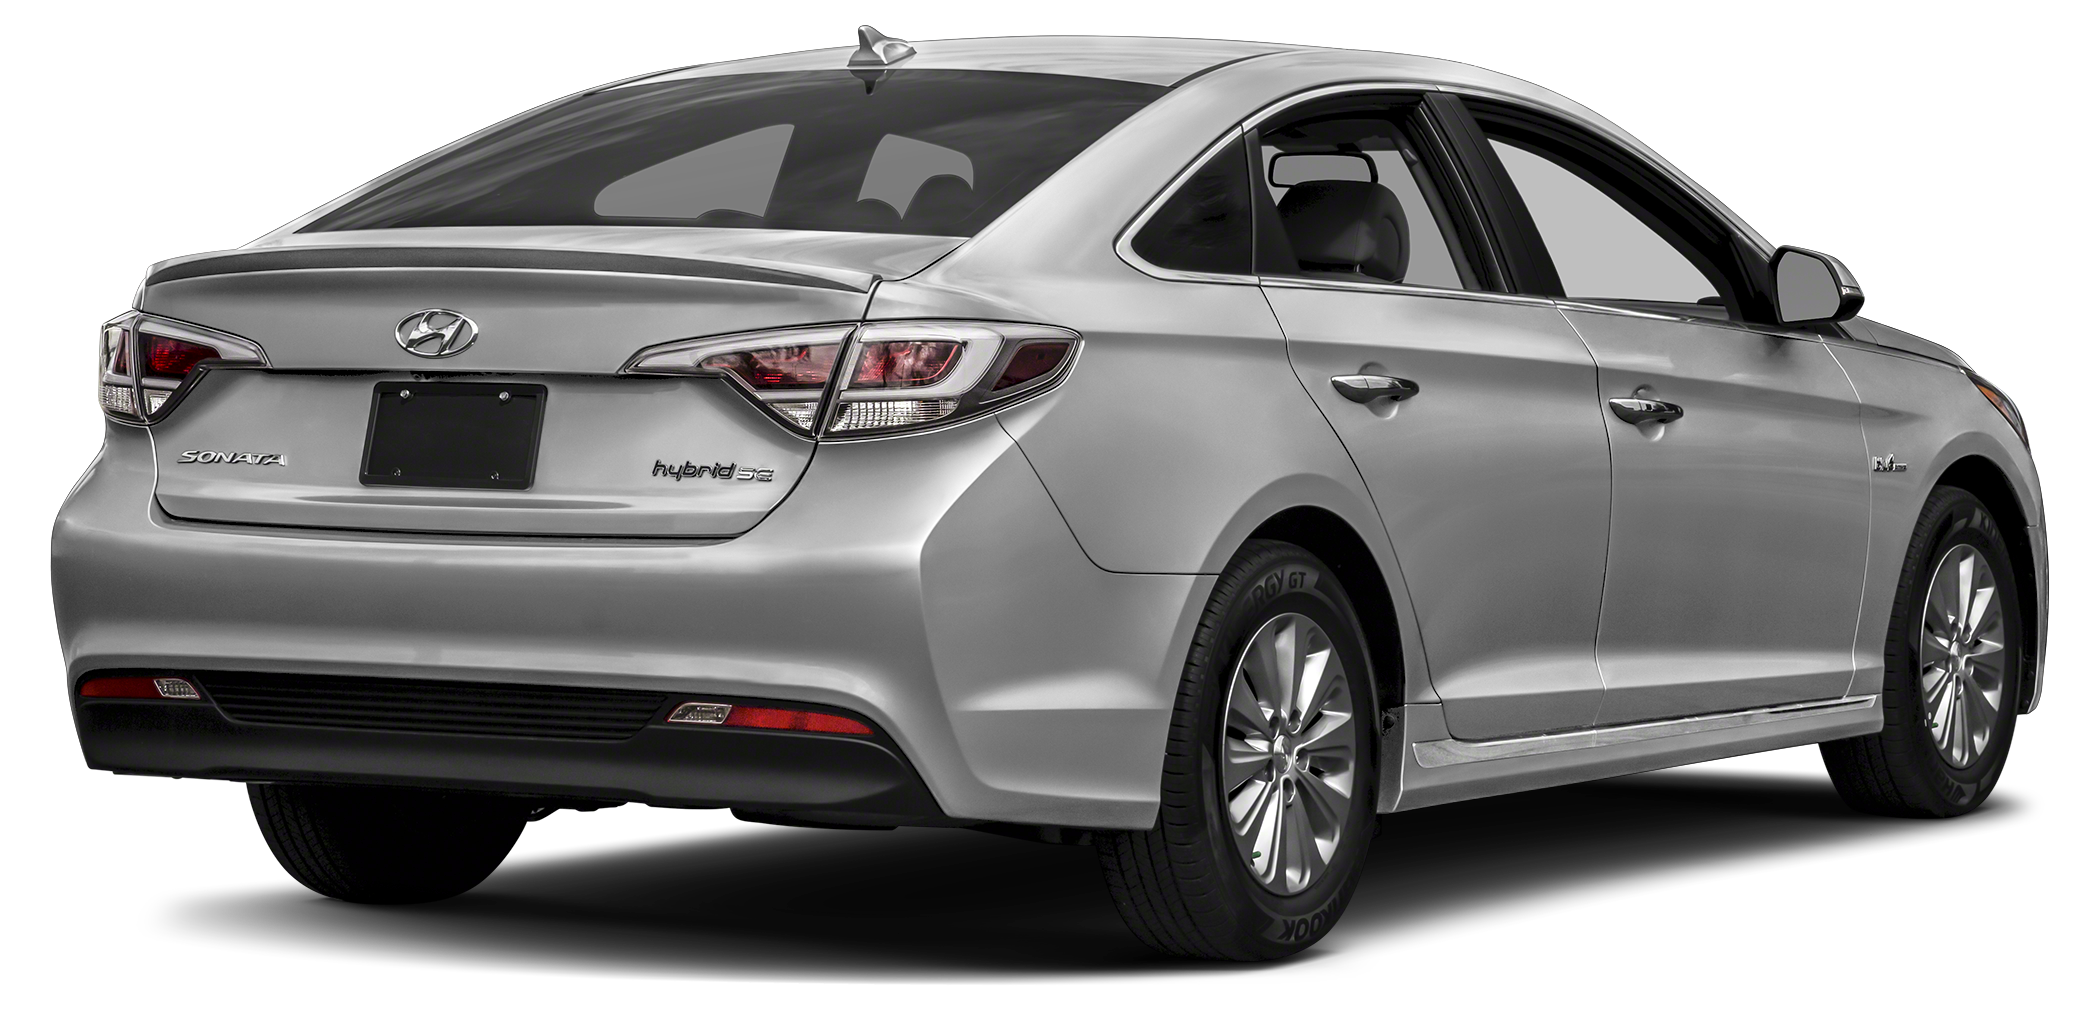 2017 Hyundai Sonata Hybrid Base 4dr Sedan